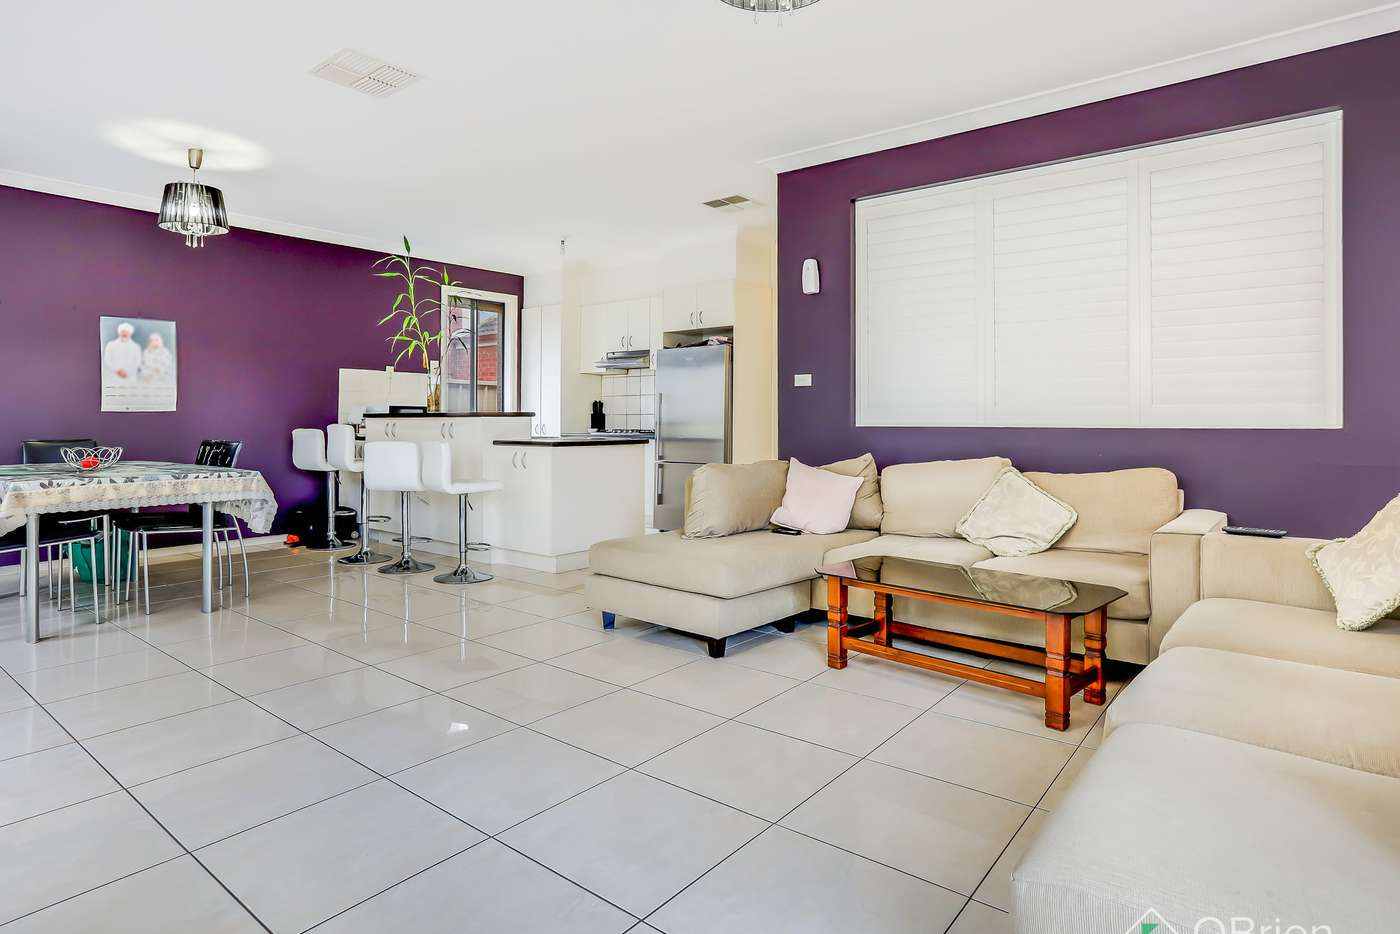 Fifth view of Homely house listing, 4 Studley Park Way, Caroline Springs VIC 3023